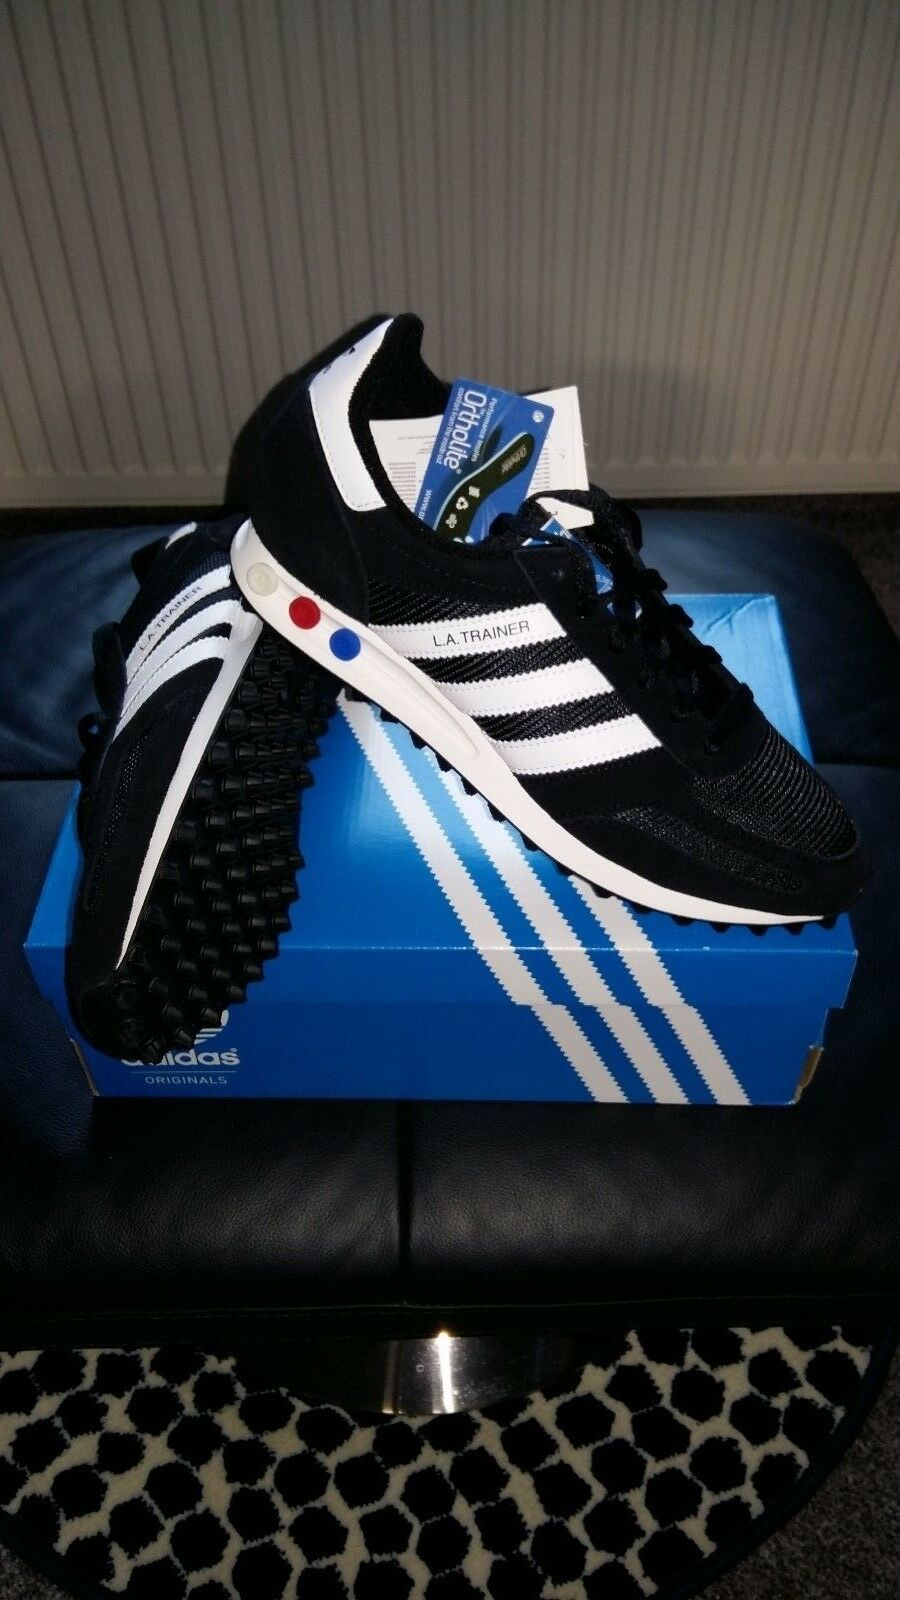 Adidas EQT SUPPORT Used 93/17 Noir & blanc UK8.5 Used SUPPORT Condition 9/10 e7c483